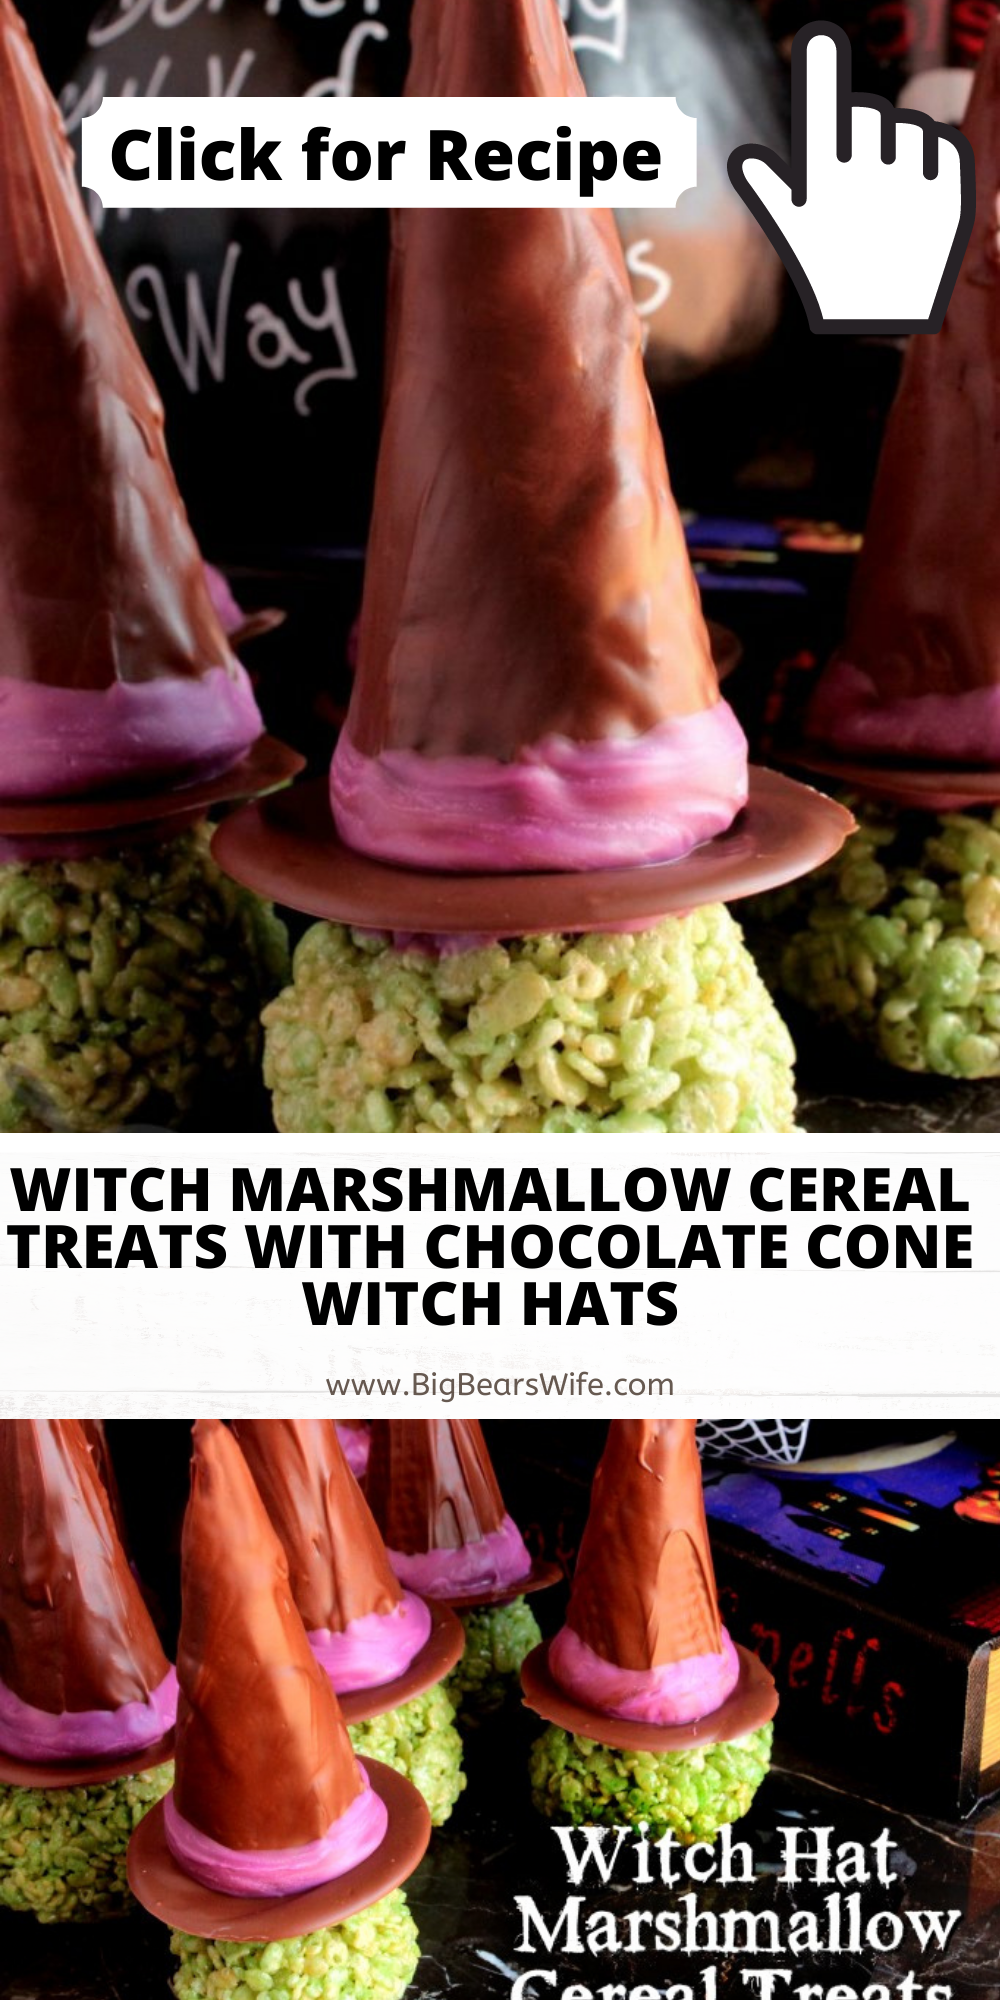 Ready for a spooky treat that's sweet to eat? These Witch Marshmallow Cereal Treats with Chocolate Cone Witch Hats have Halloween written all over them! Enjoy them at home or give them out as treats!